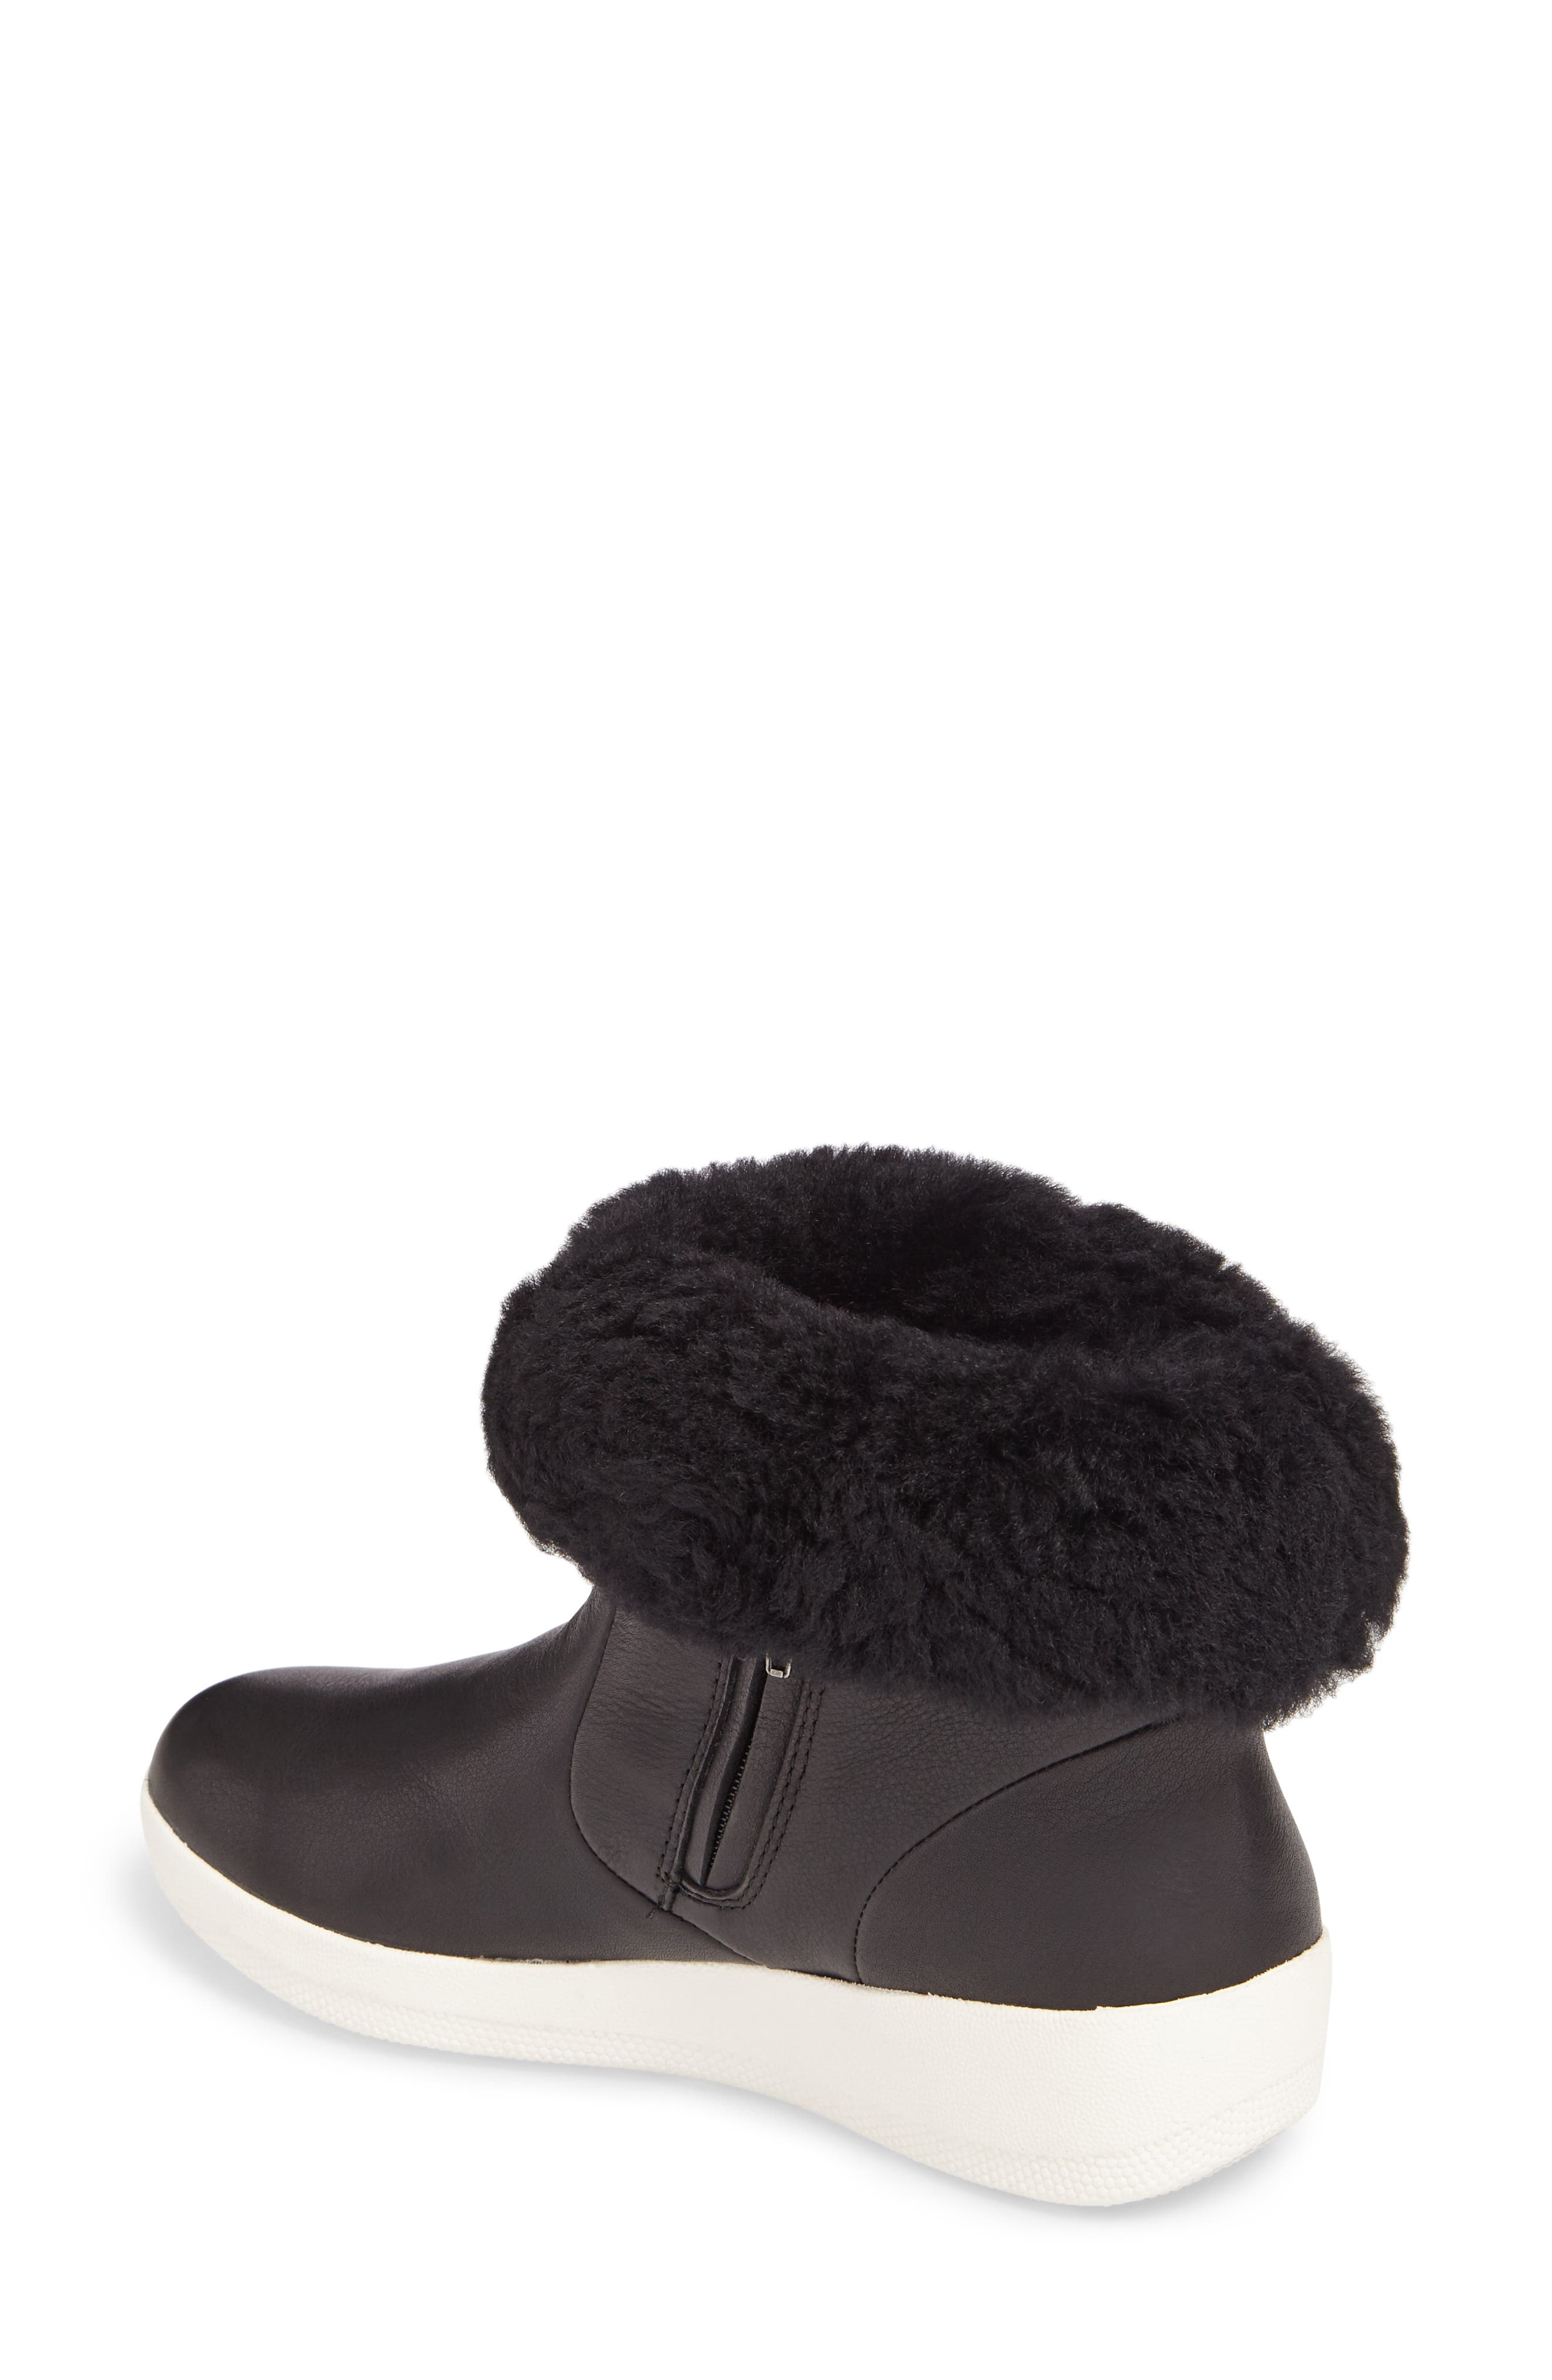 Skatebootie<sup>™</sup> with Genuine Shearling Cuff,                             Alternate thumbnail 3, color,